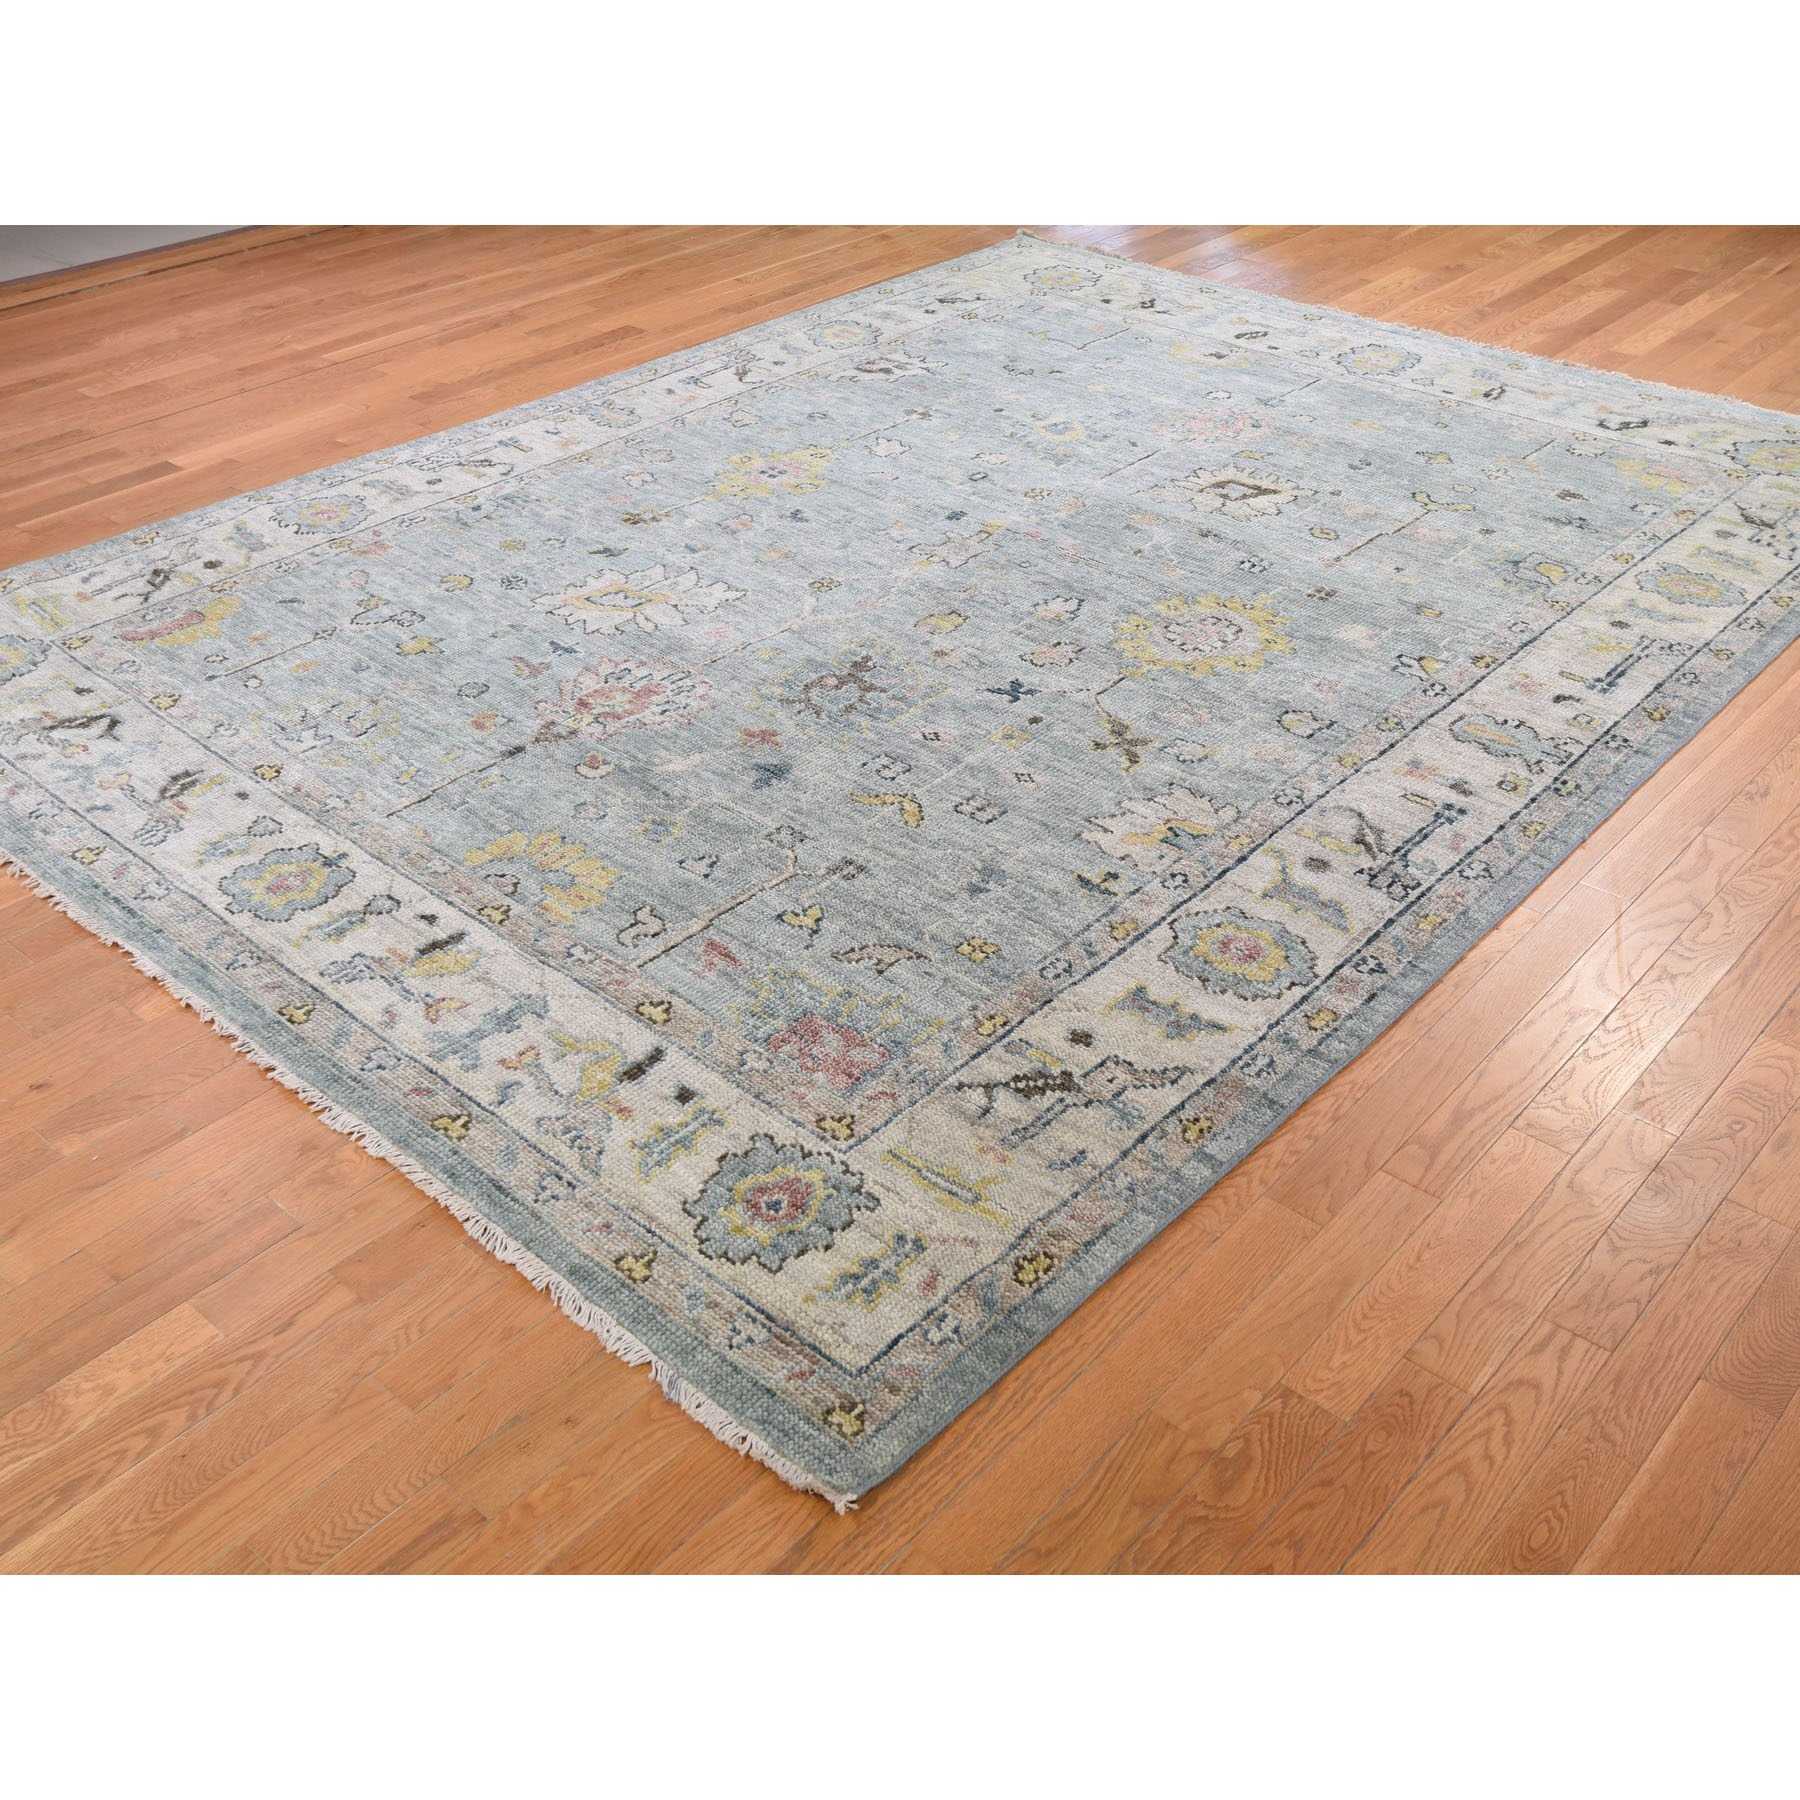 "9'x11'10"" Gray Supple Collection Oushak Design Hand Knotted Oriental Rug"